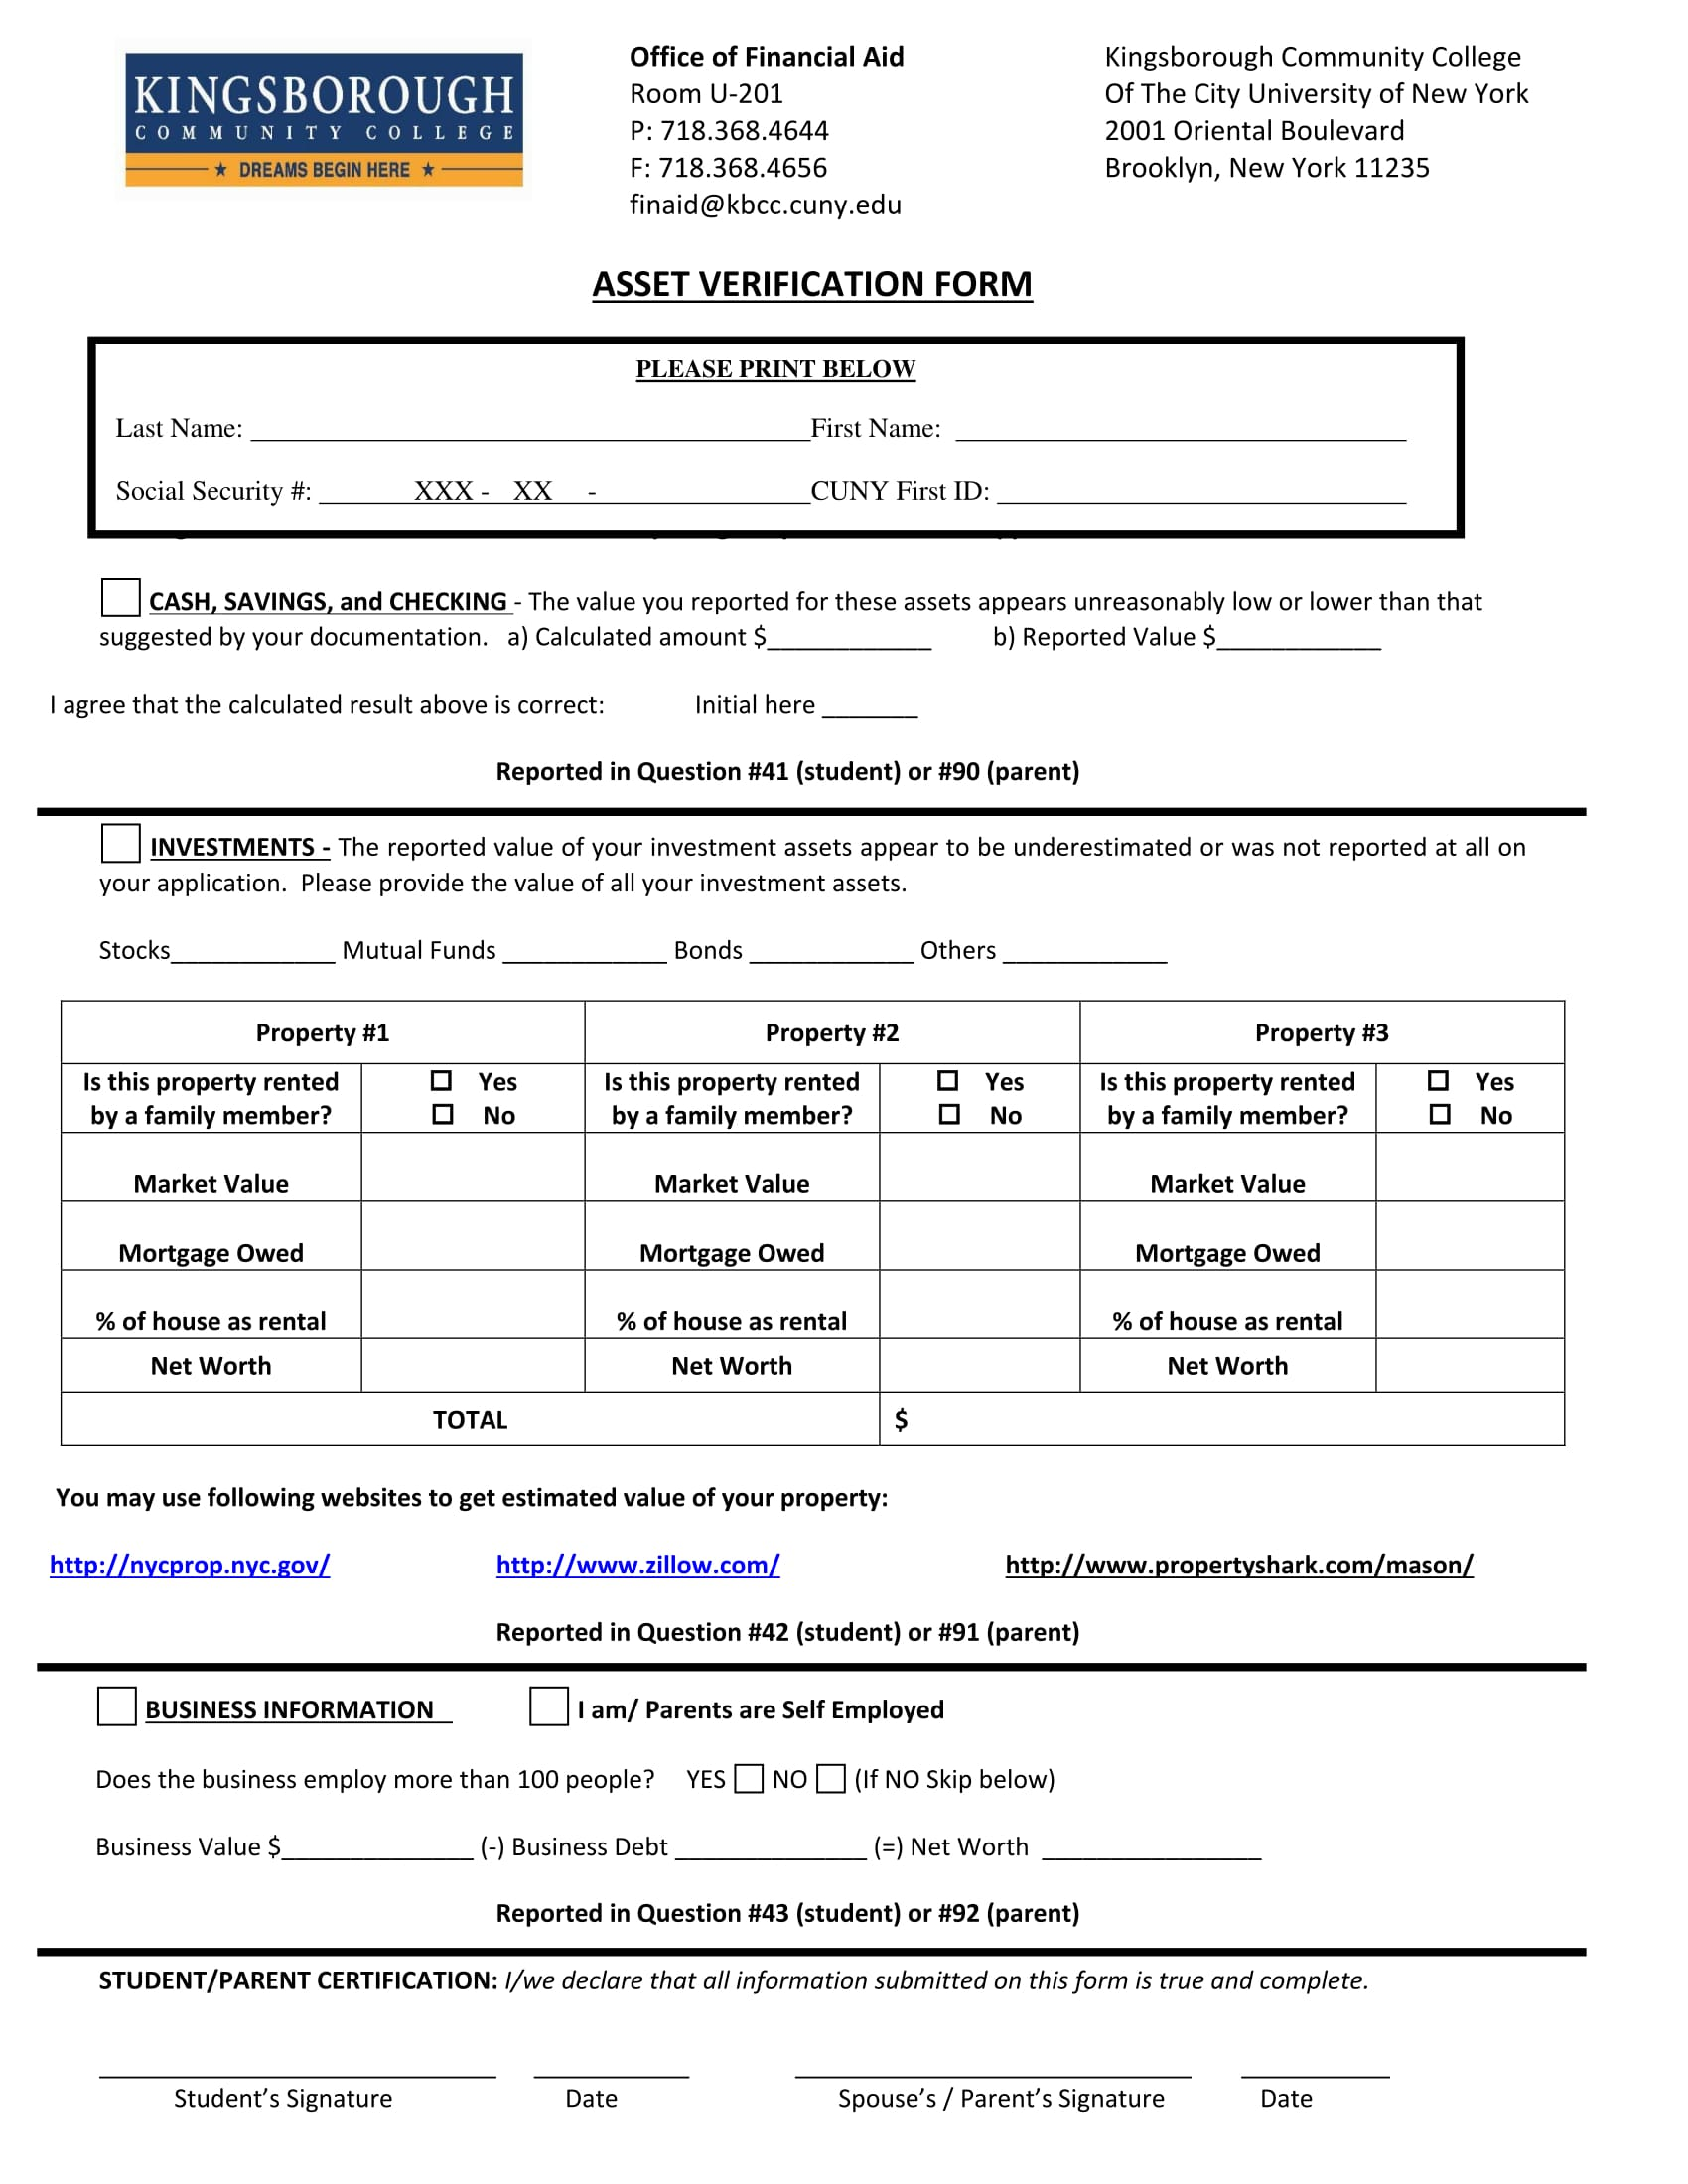 financial aid asset verification form 1